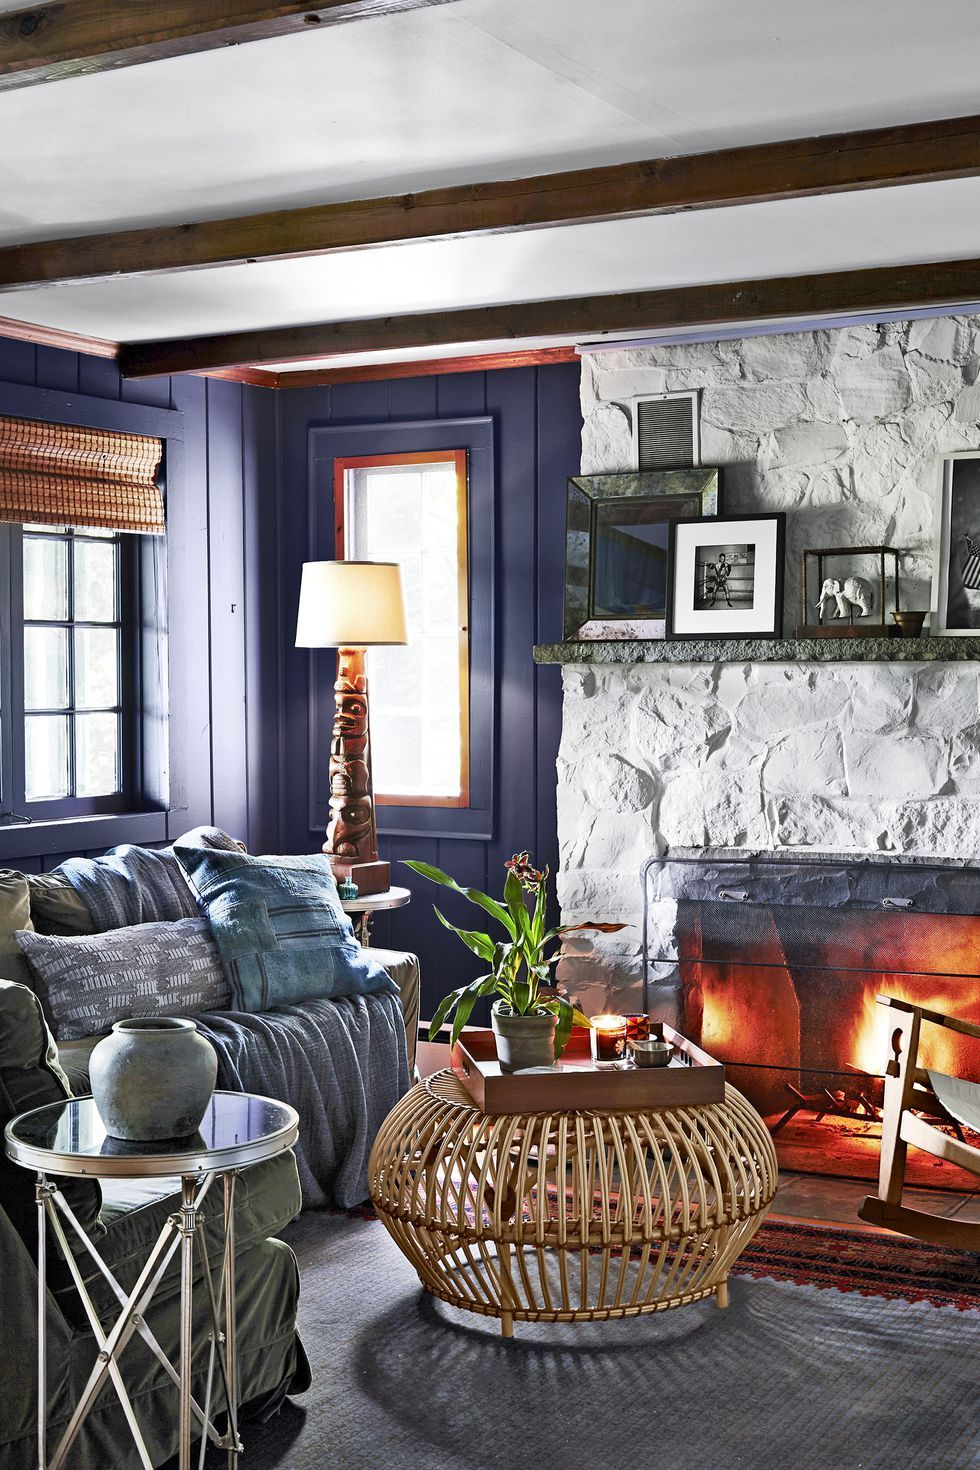 How To Decorate Fireplace 40 Fireplace Design Ideas Fireplace Mantel Decorating Ideas